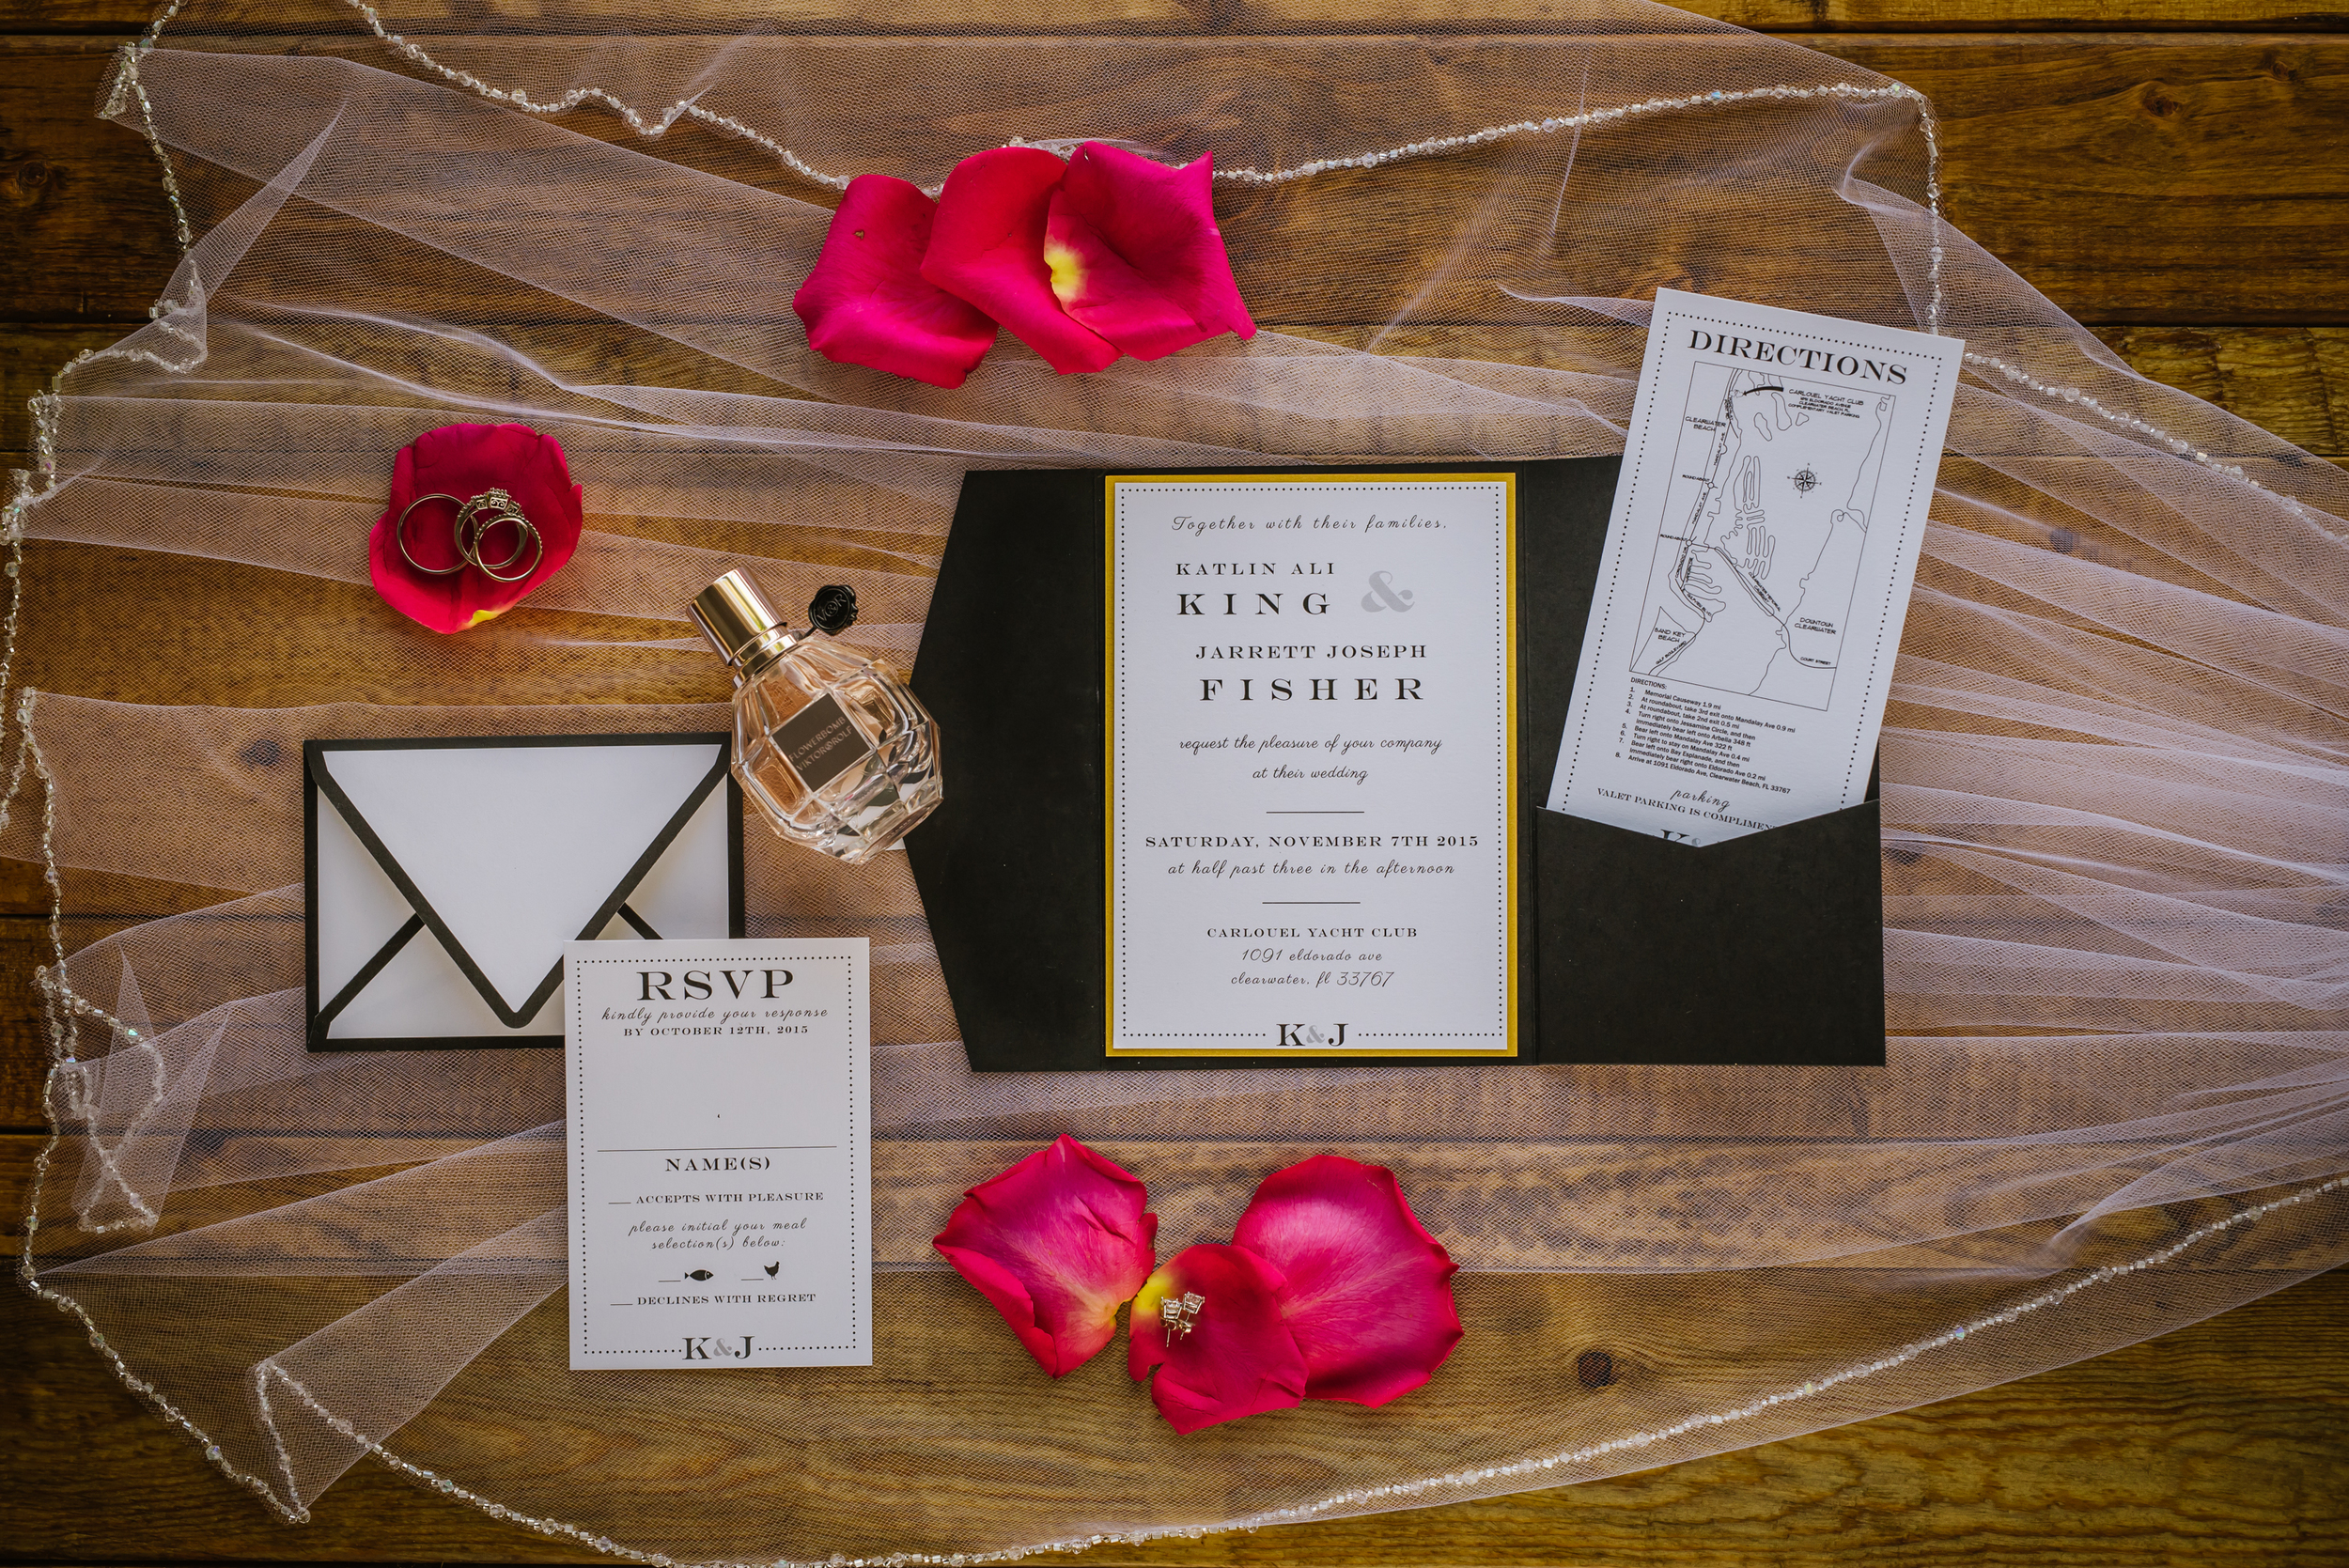 tampa-wedding-photographer-invitations-flat-lay-commercial-black-fuchsia-invitations-coco-chanel-perfume